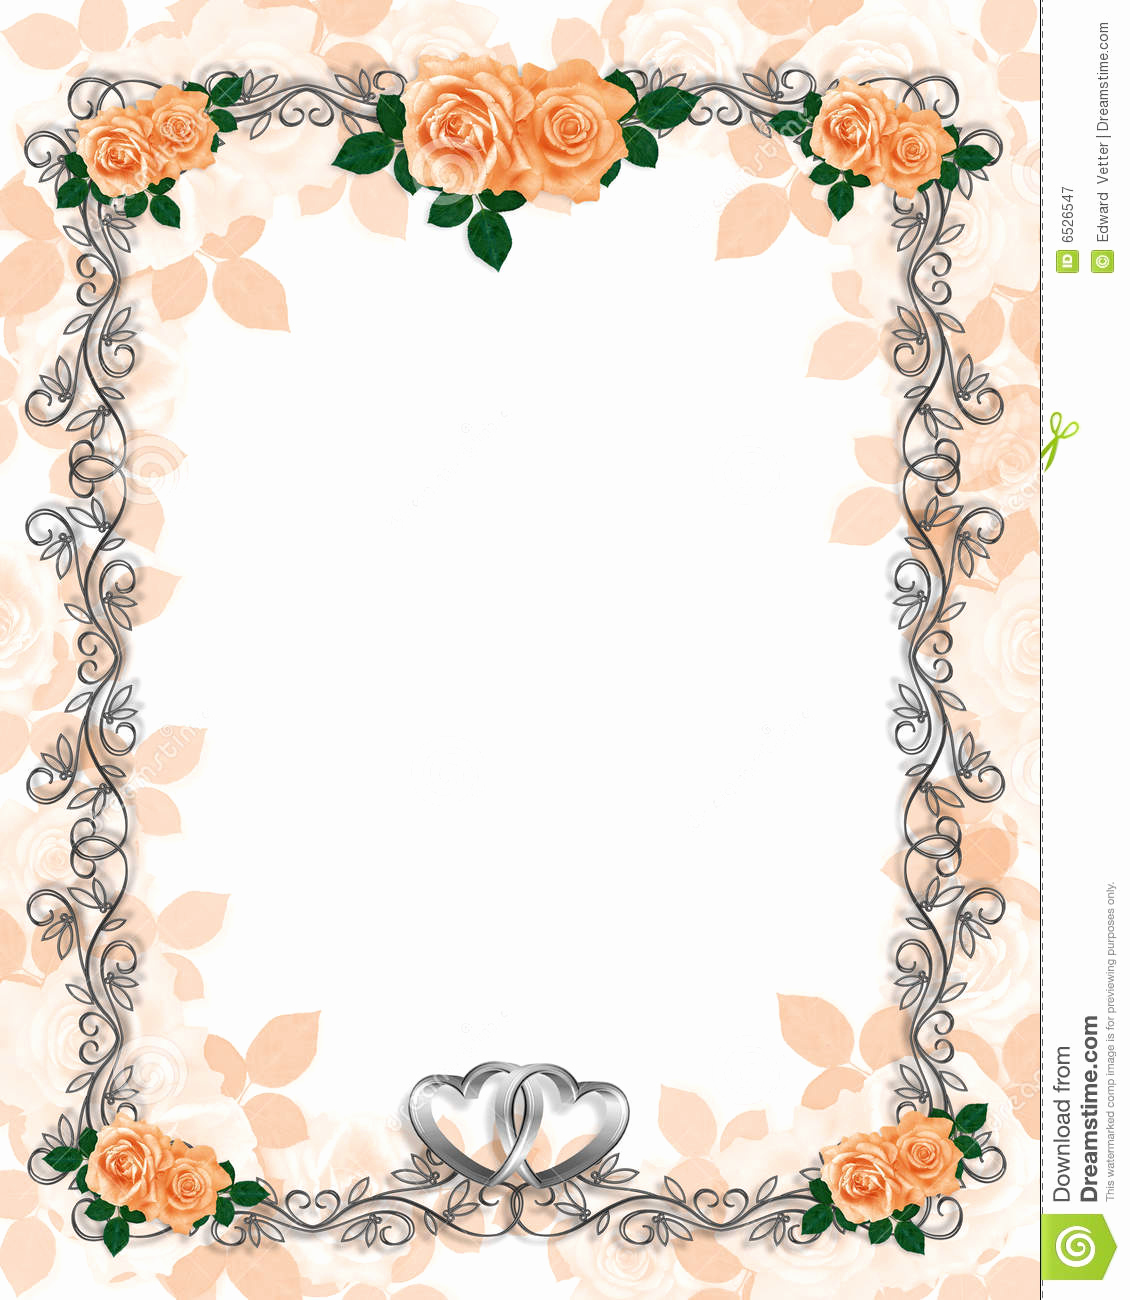 Wedding Invitation Borders Design Inspirational Free Printable Borders for Wedding Invitations